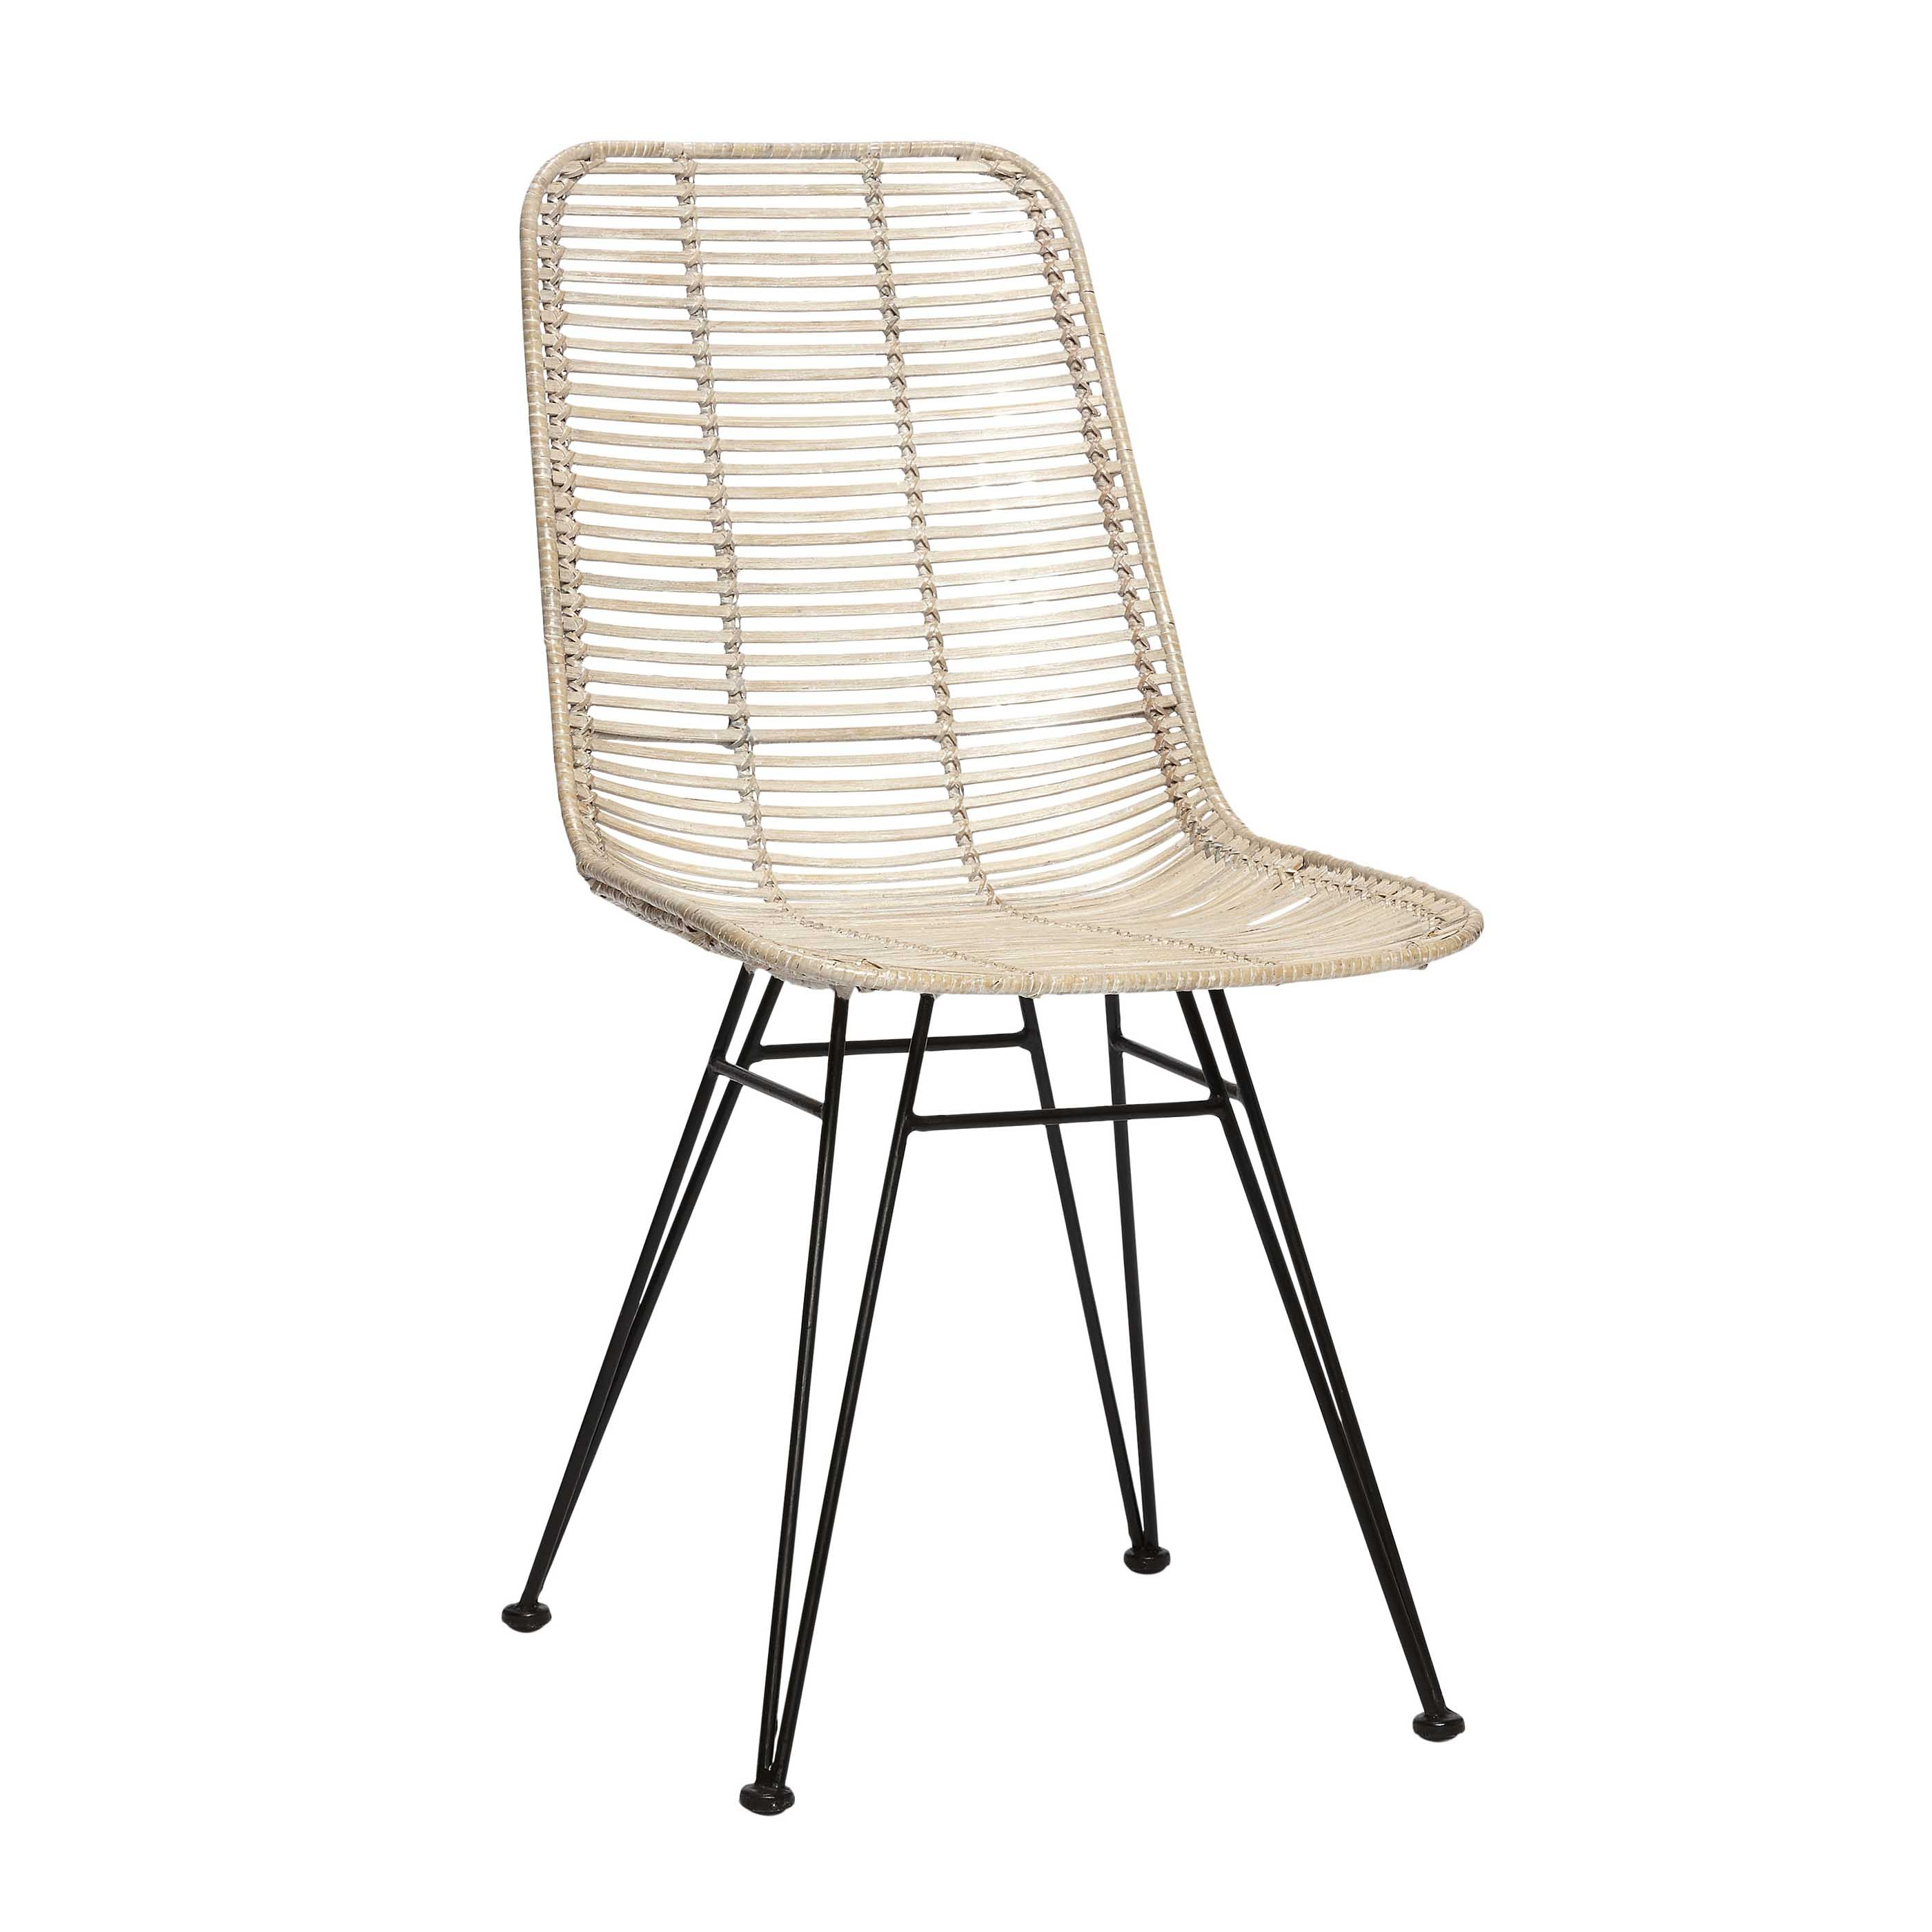 STUDIO chair in white rattan with steel base HüBSCH